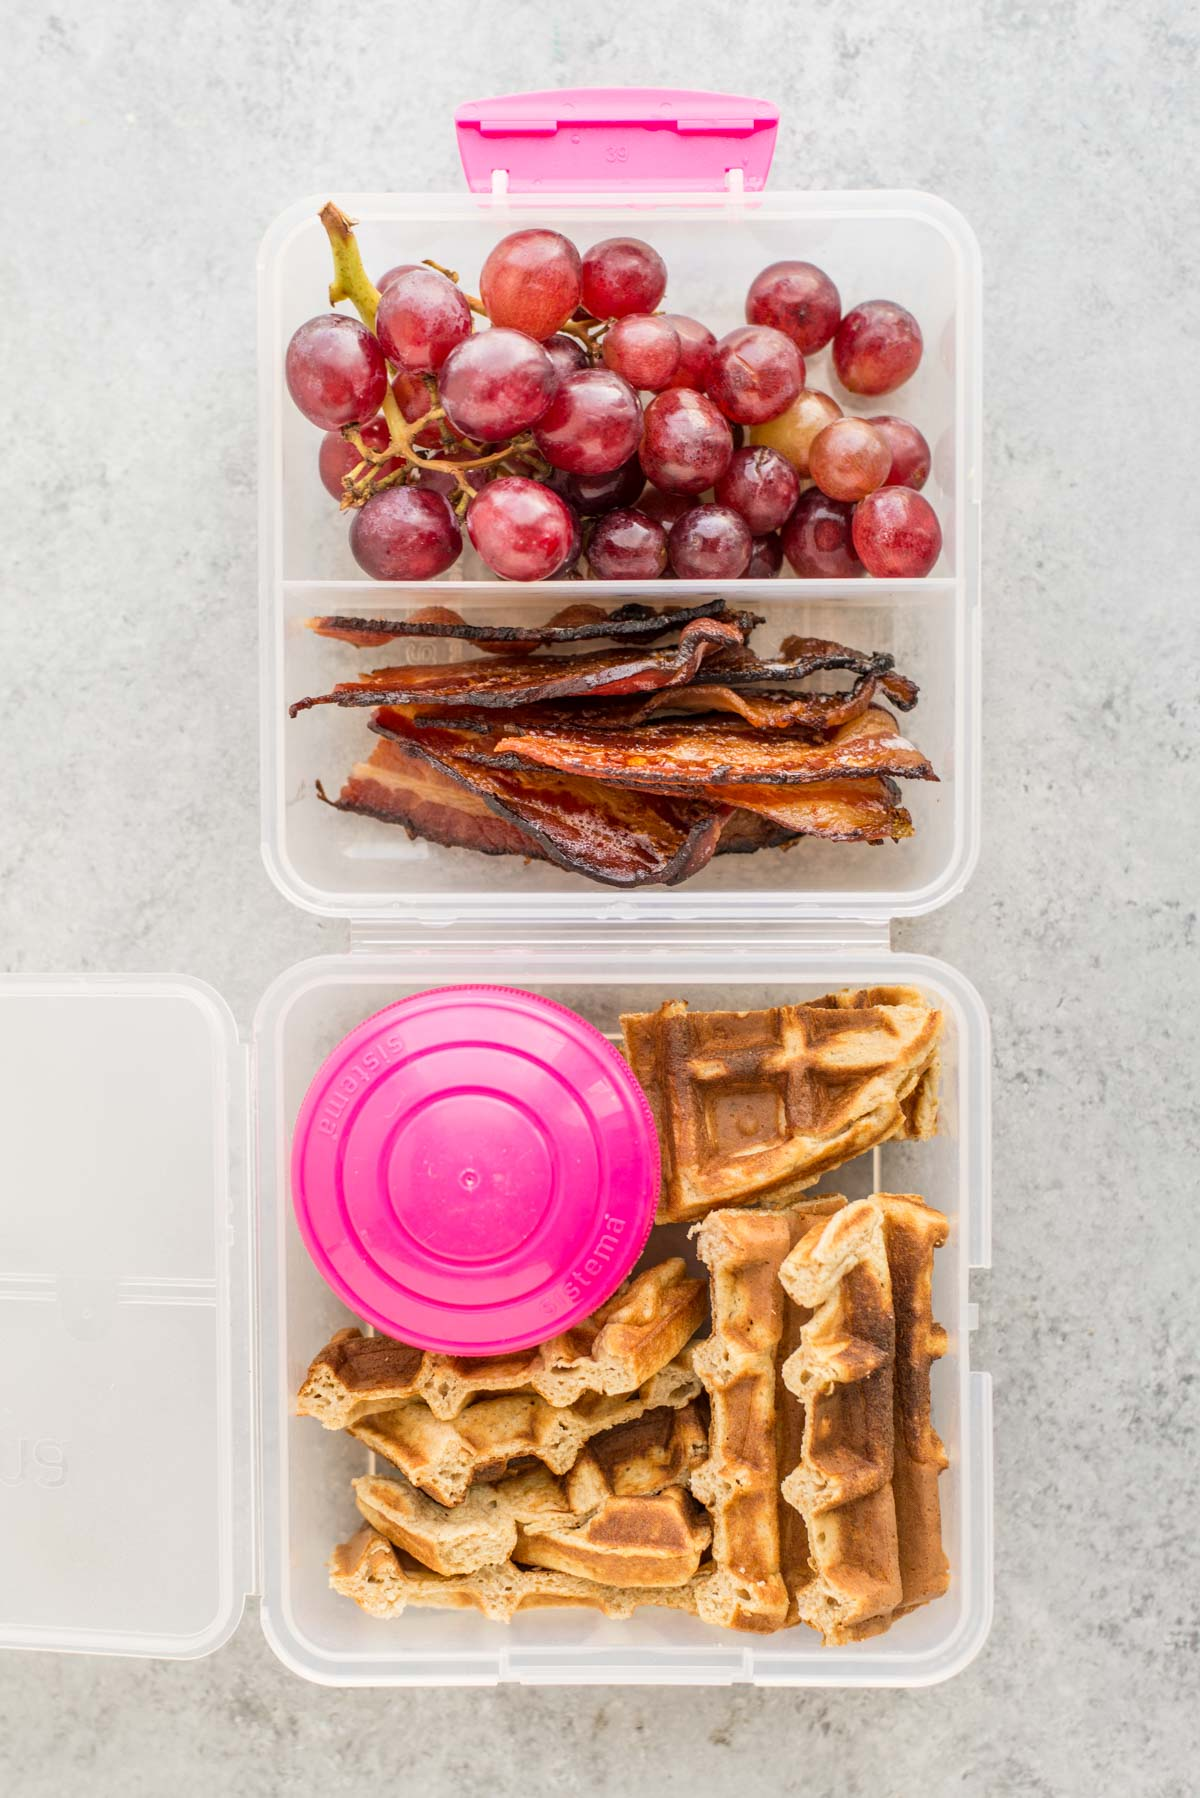 5 Healthy & Simple Lunch Box Ideas Your Kids Will Love - Simple Roots